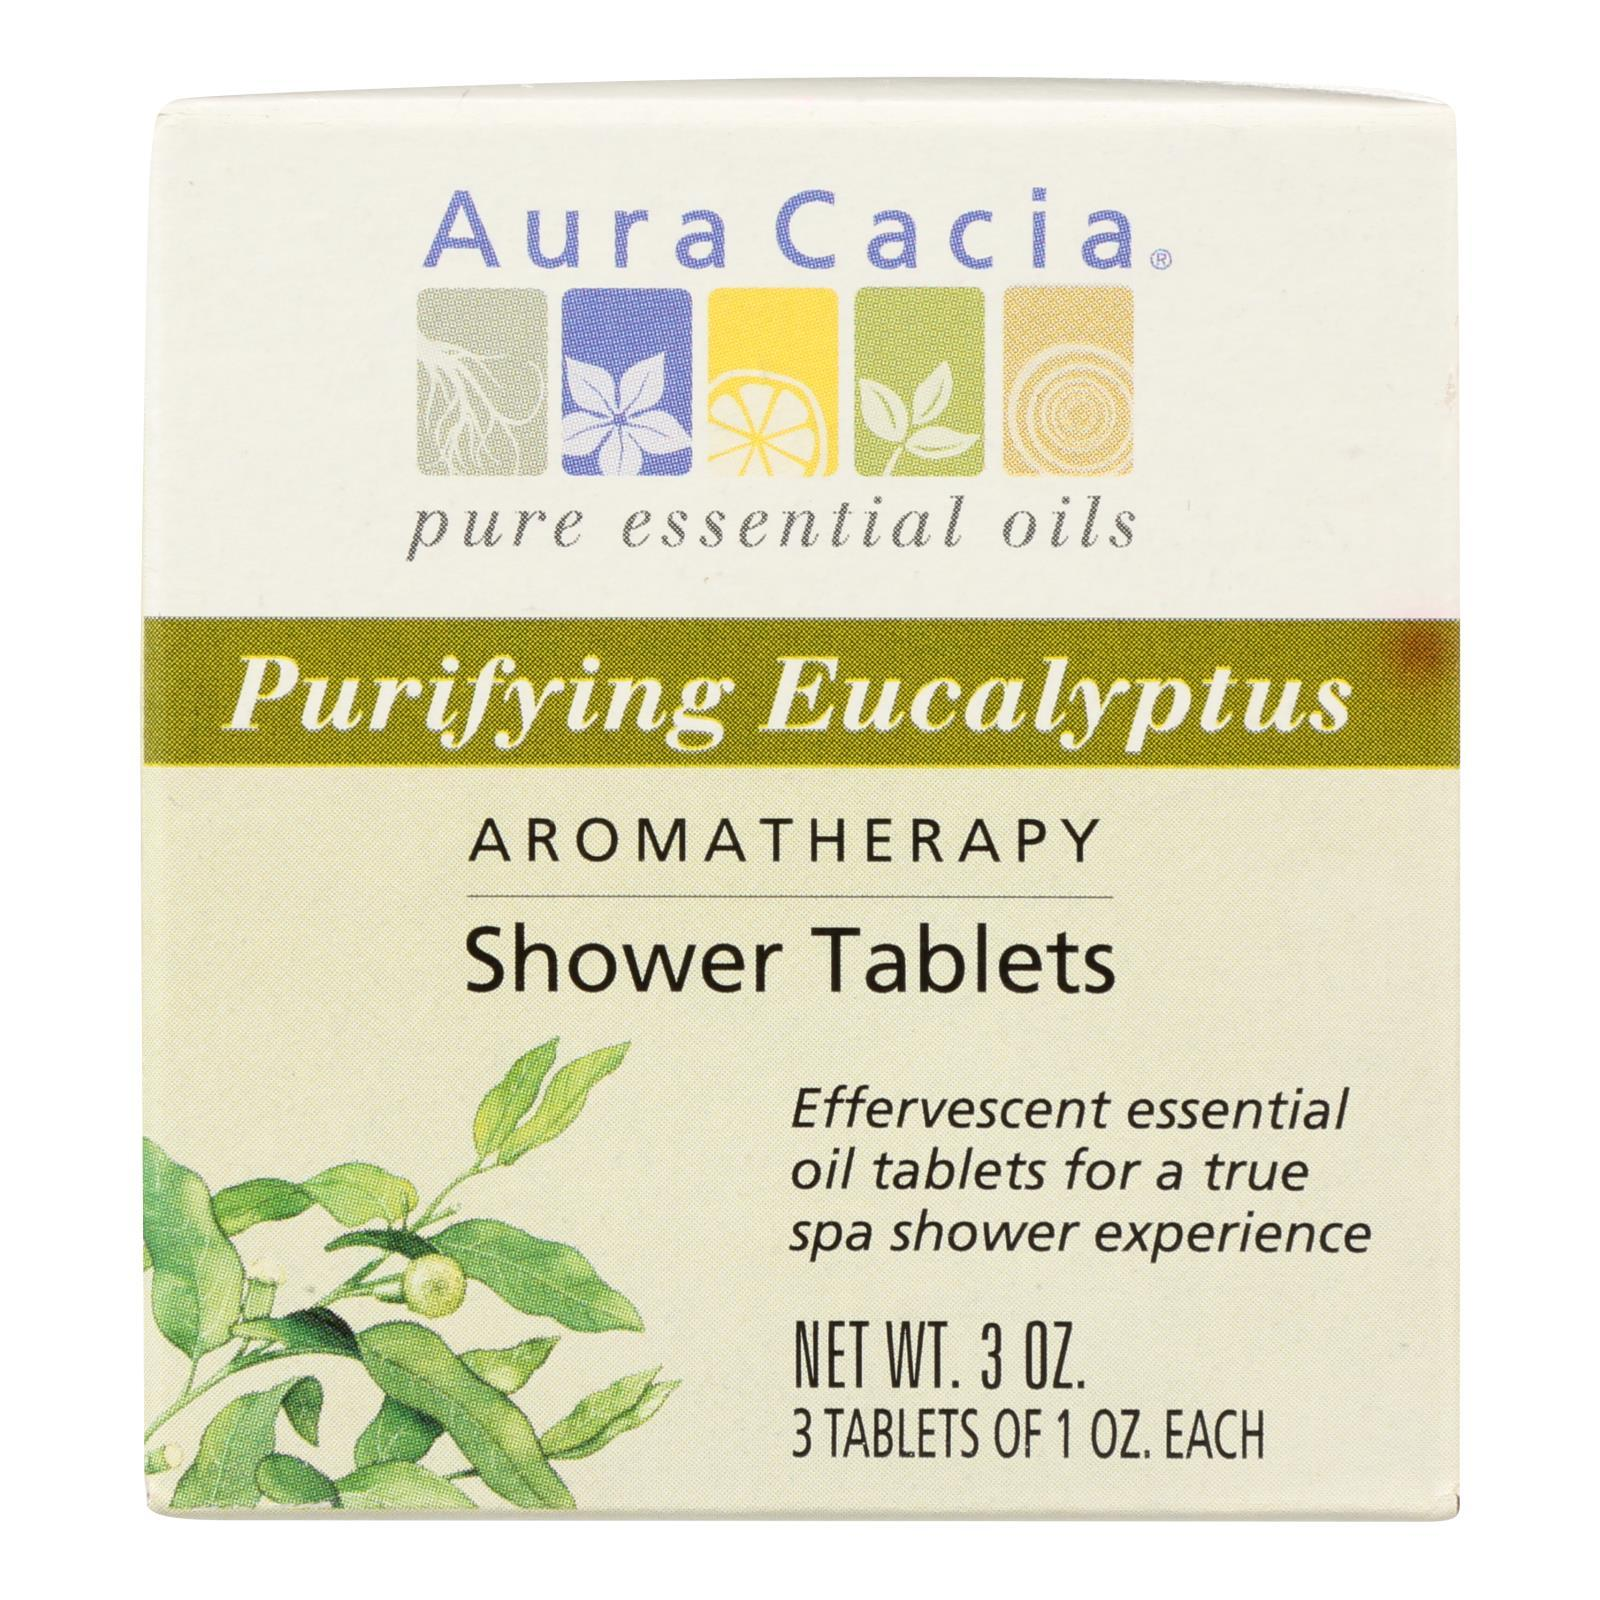 Aura Cacia - Purifying Aromatherapy Shower Tablets Eucalyptus - 3 Tablets - BeeGreen